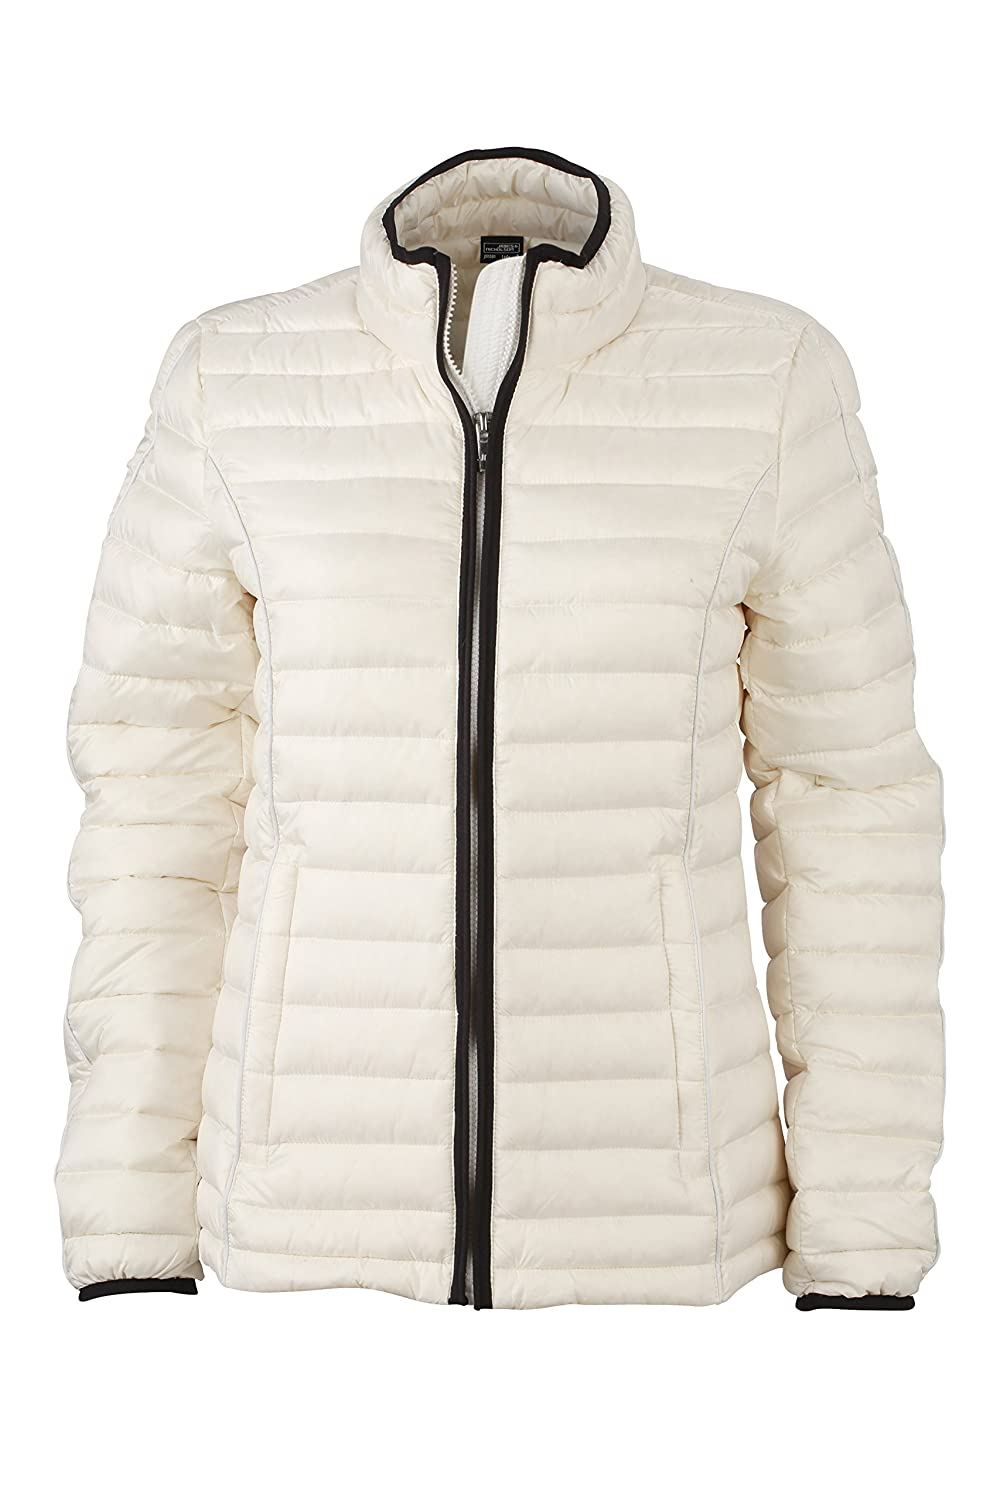 TALLA M. James & Nicholson Daunenjacke Ladies Quilted Down Jacket Chaqueta para Mujer